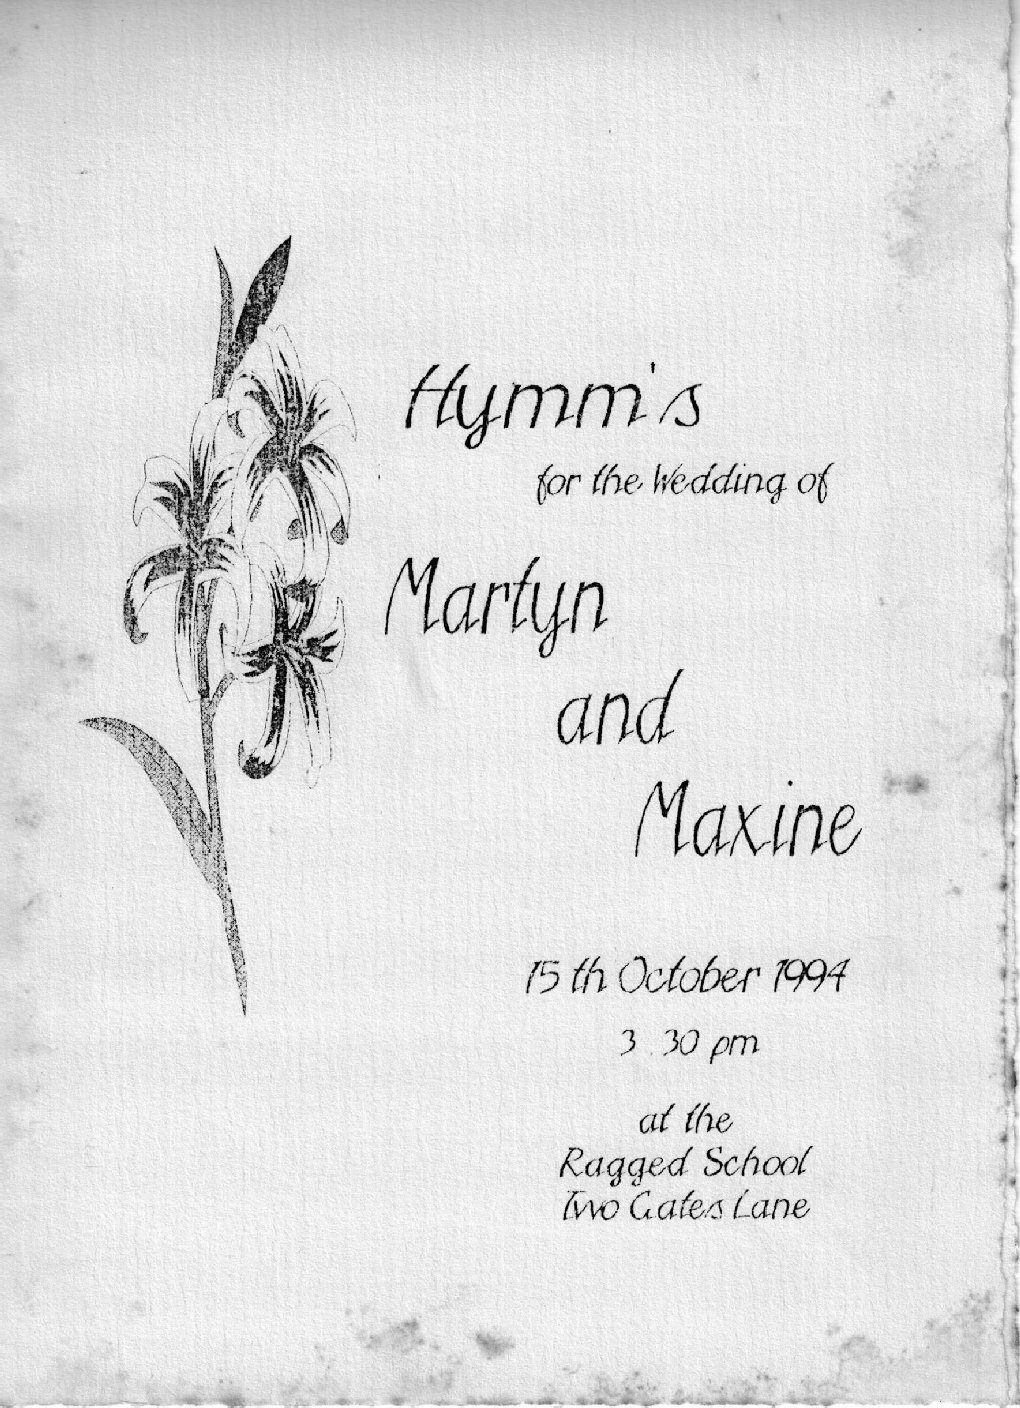 C013a Martyn-and-Maxine[15-10-94]